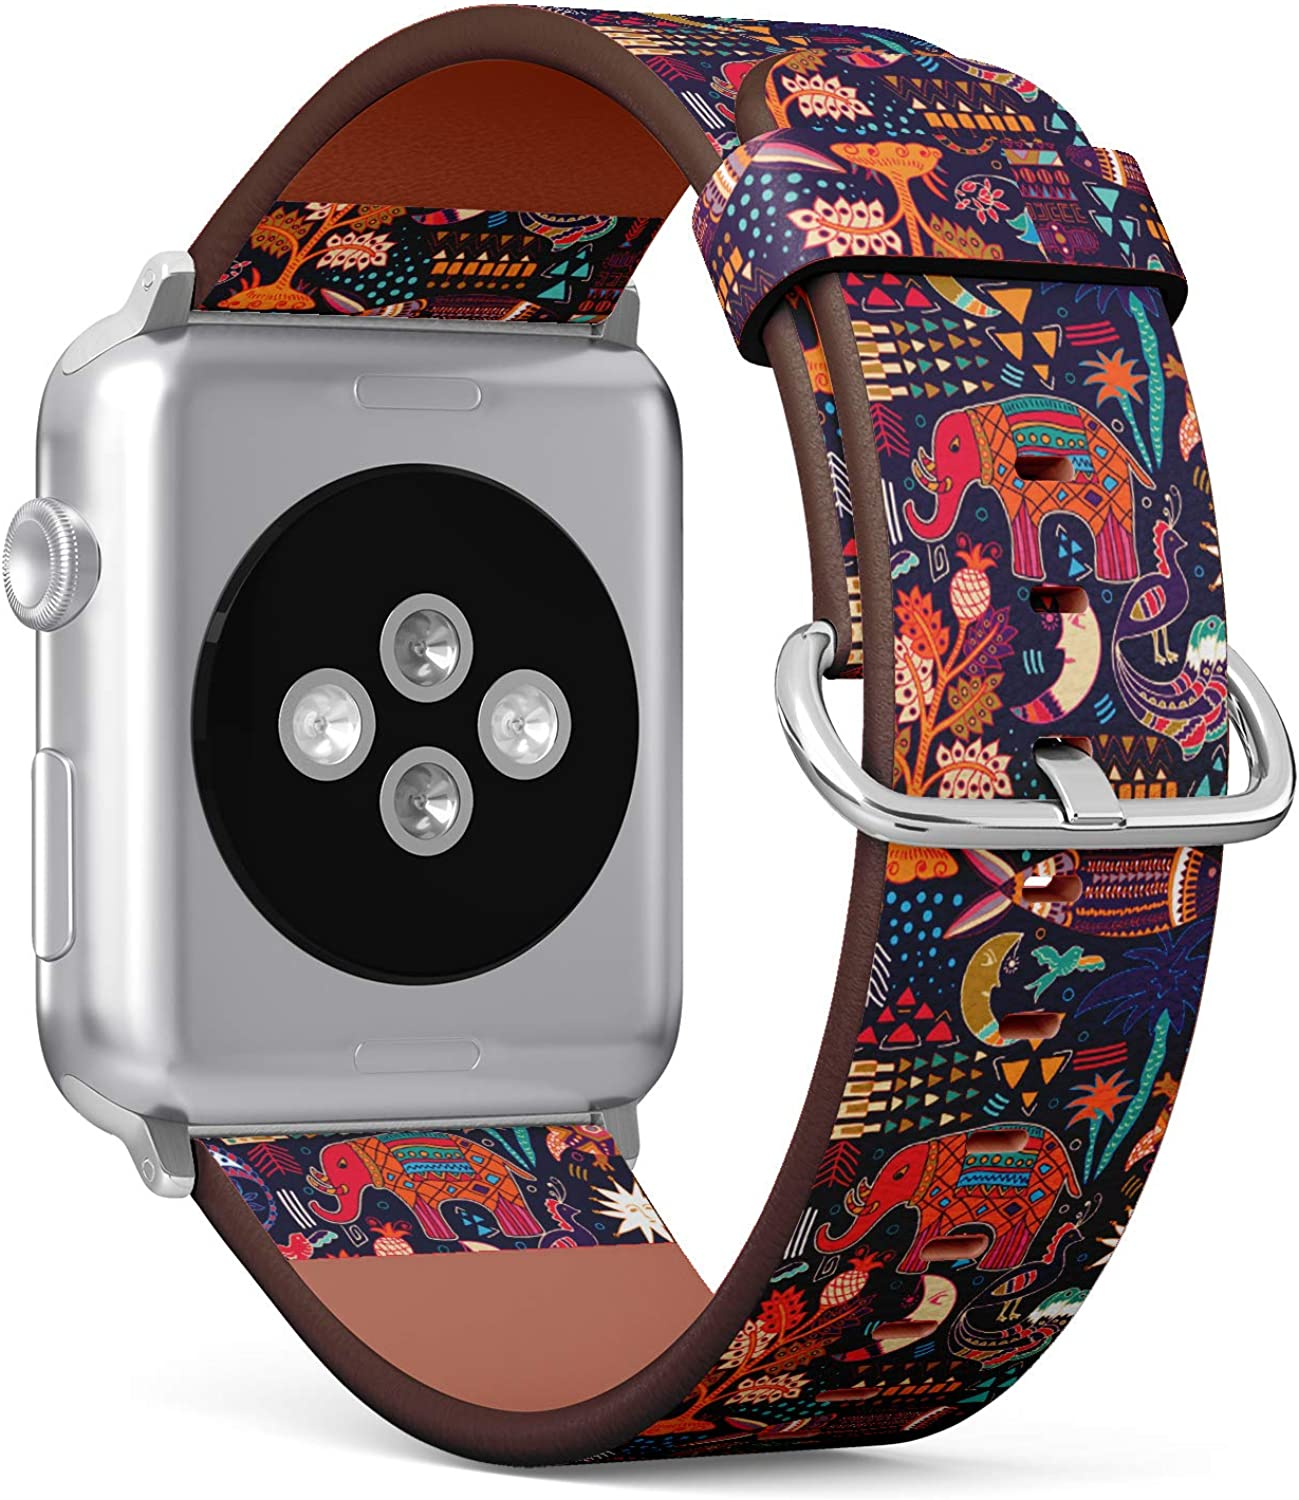 (Hand Drawn Tribal Pattern with Decorative Elephant Fish Moon and Geometric Elements) Patterned Leather Wristband Strap for Apple Watch Series 4/3/2/1 gen,Replacement for iWatch 42mm / 44mm Bands